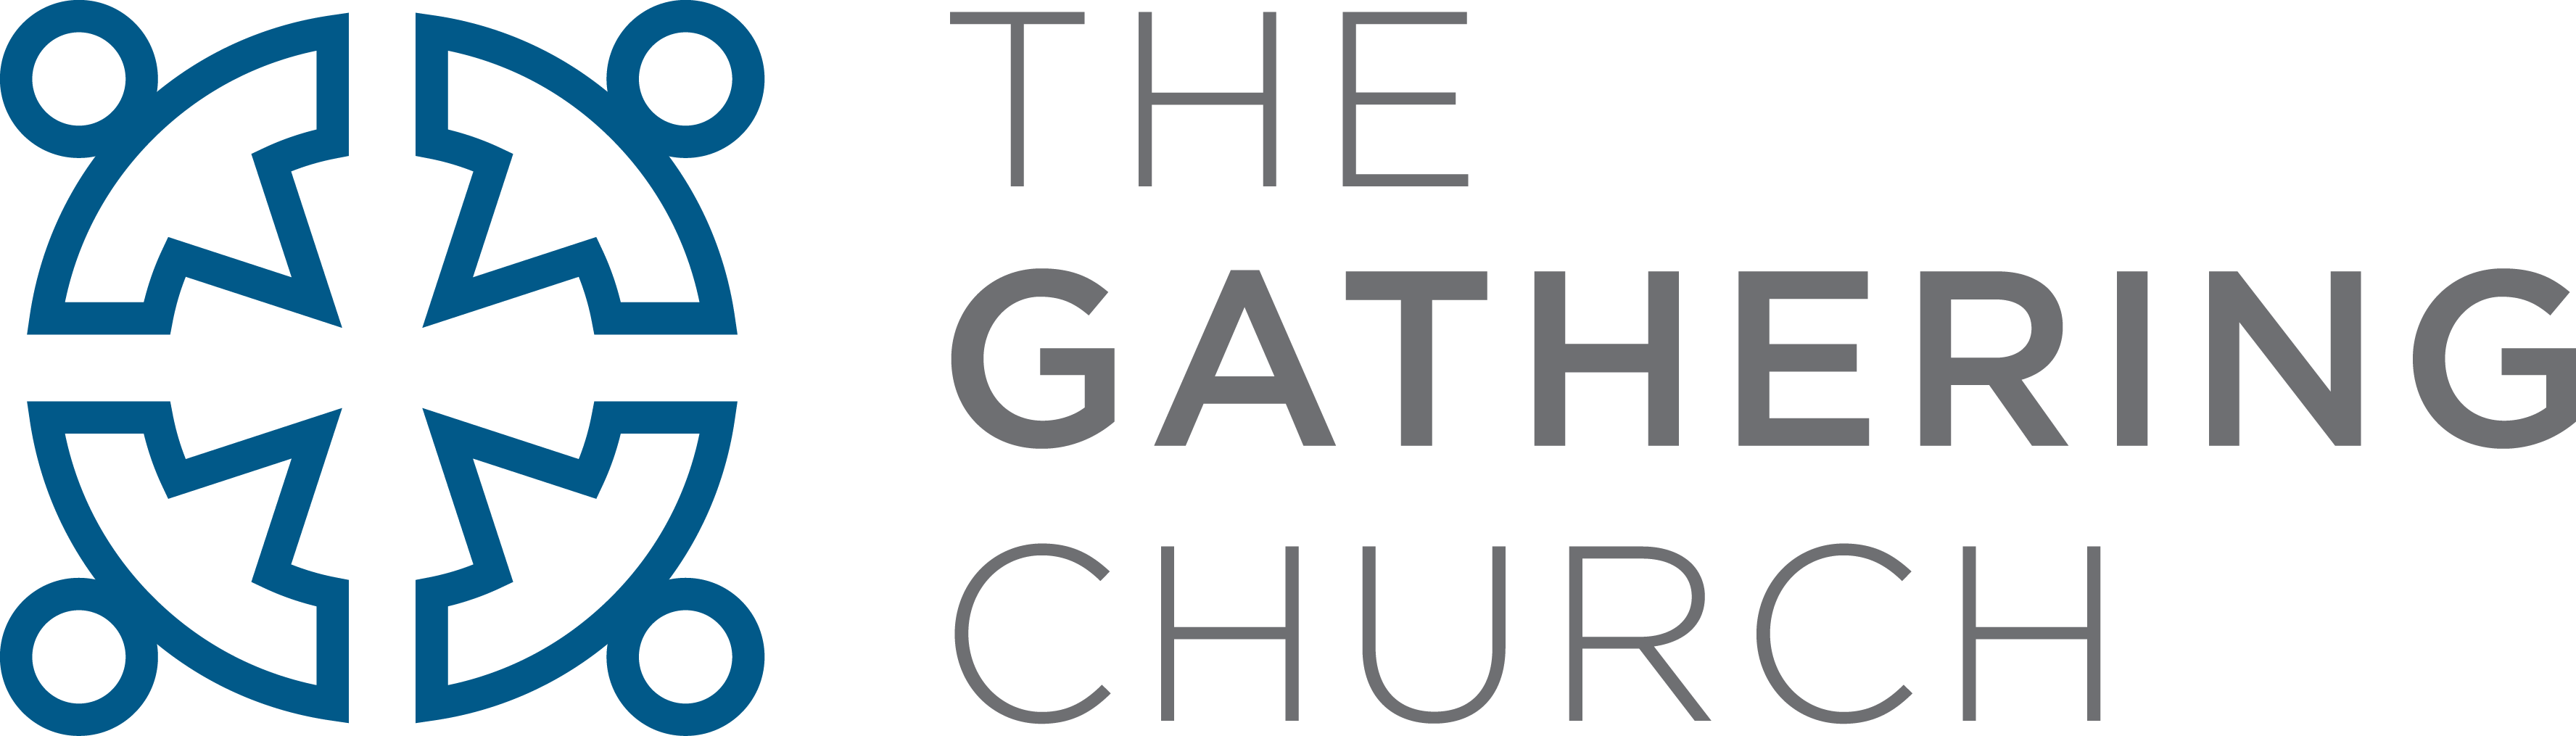 Thegatheringchurch logo final